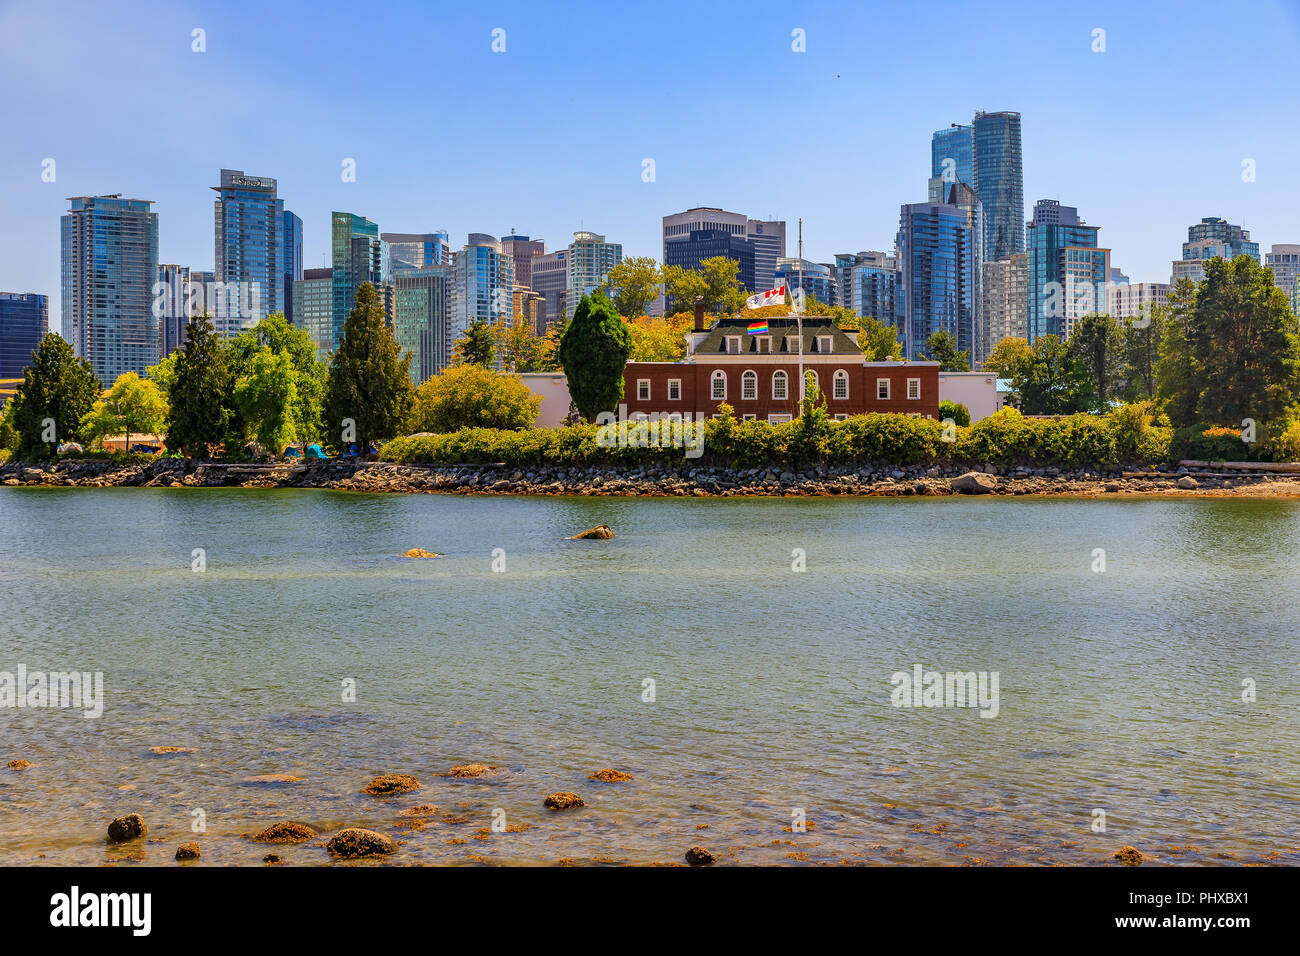 Vancouver, Canada - August 04, 2018: HMCS Discovery naval station museum located on Deadmans Island decorated with a rainbow flag for Gay Pride Stock Photo